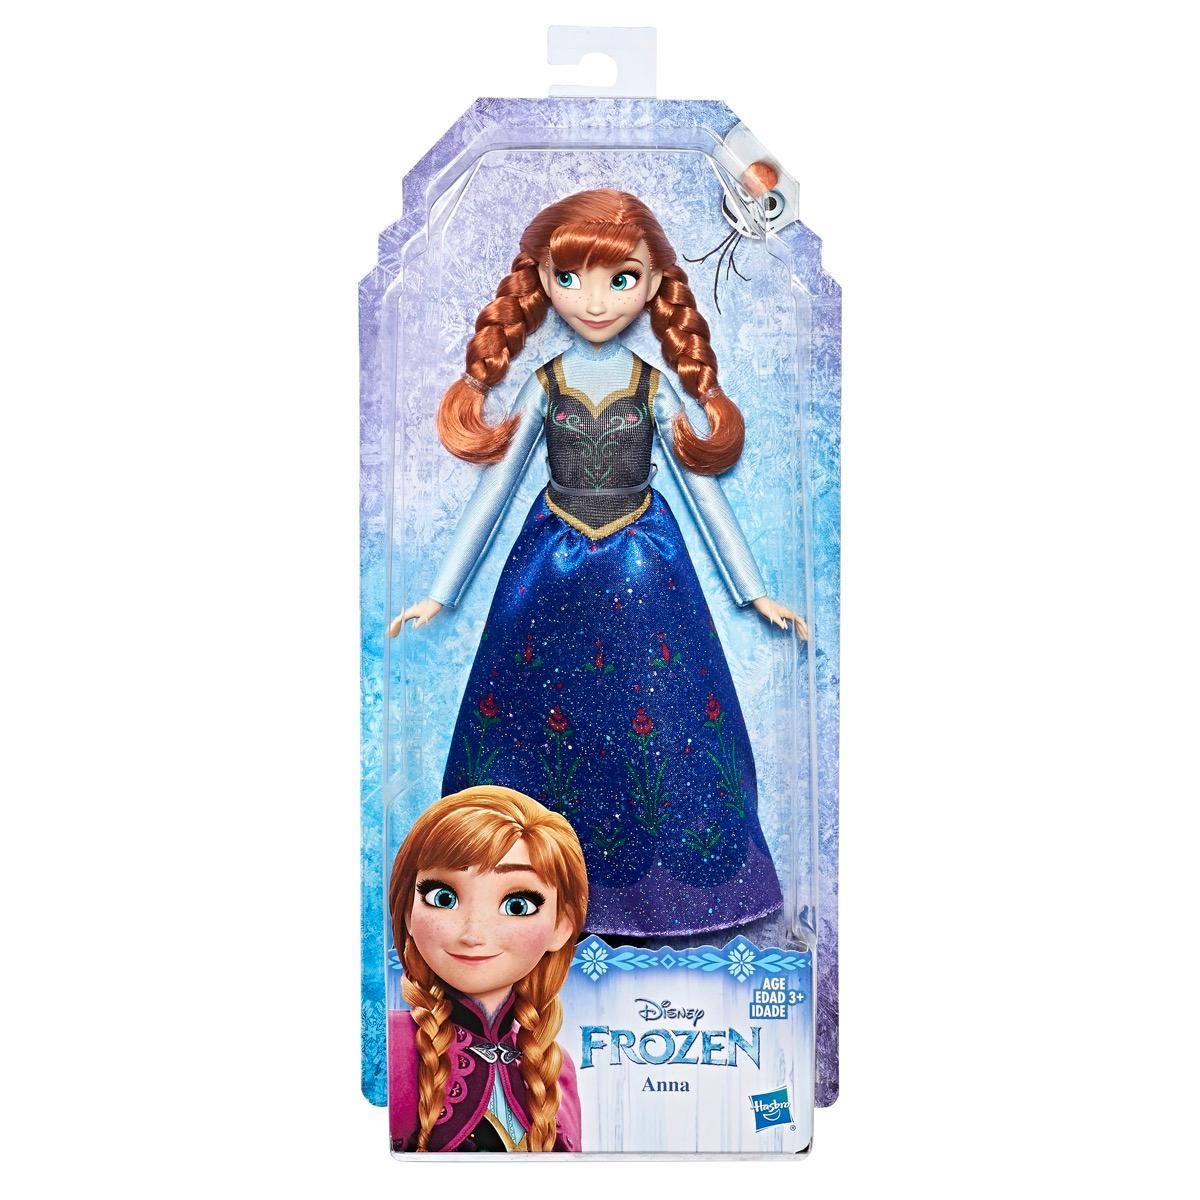 Frozen Classic Fashion 12 Inch Anna Doll